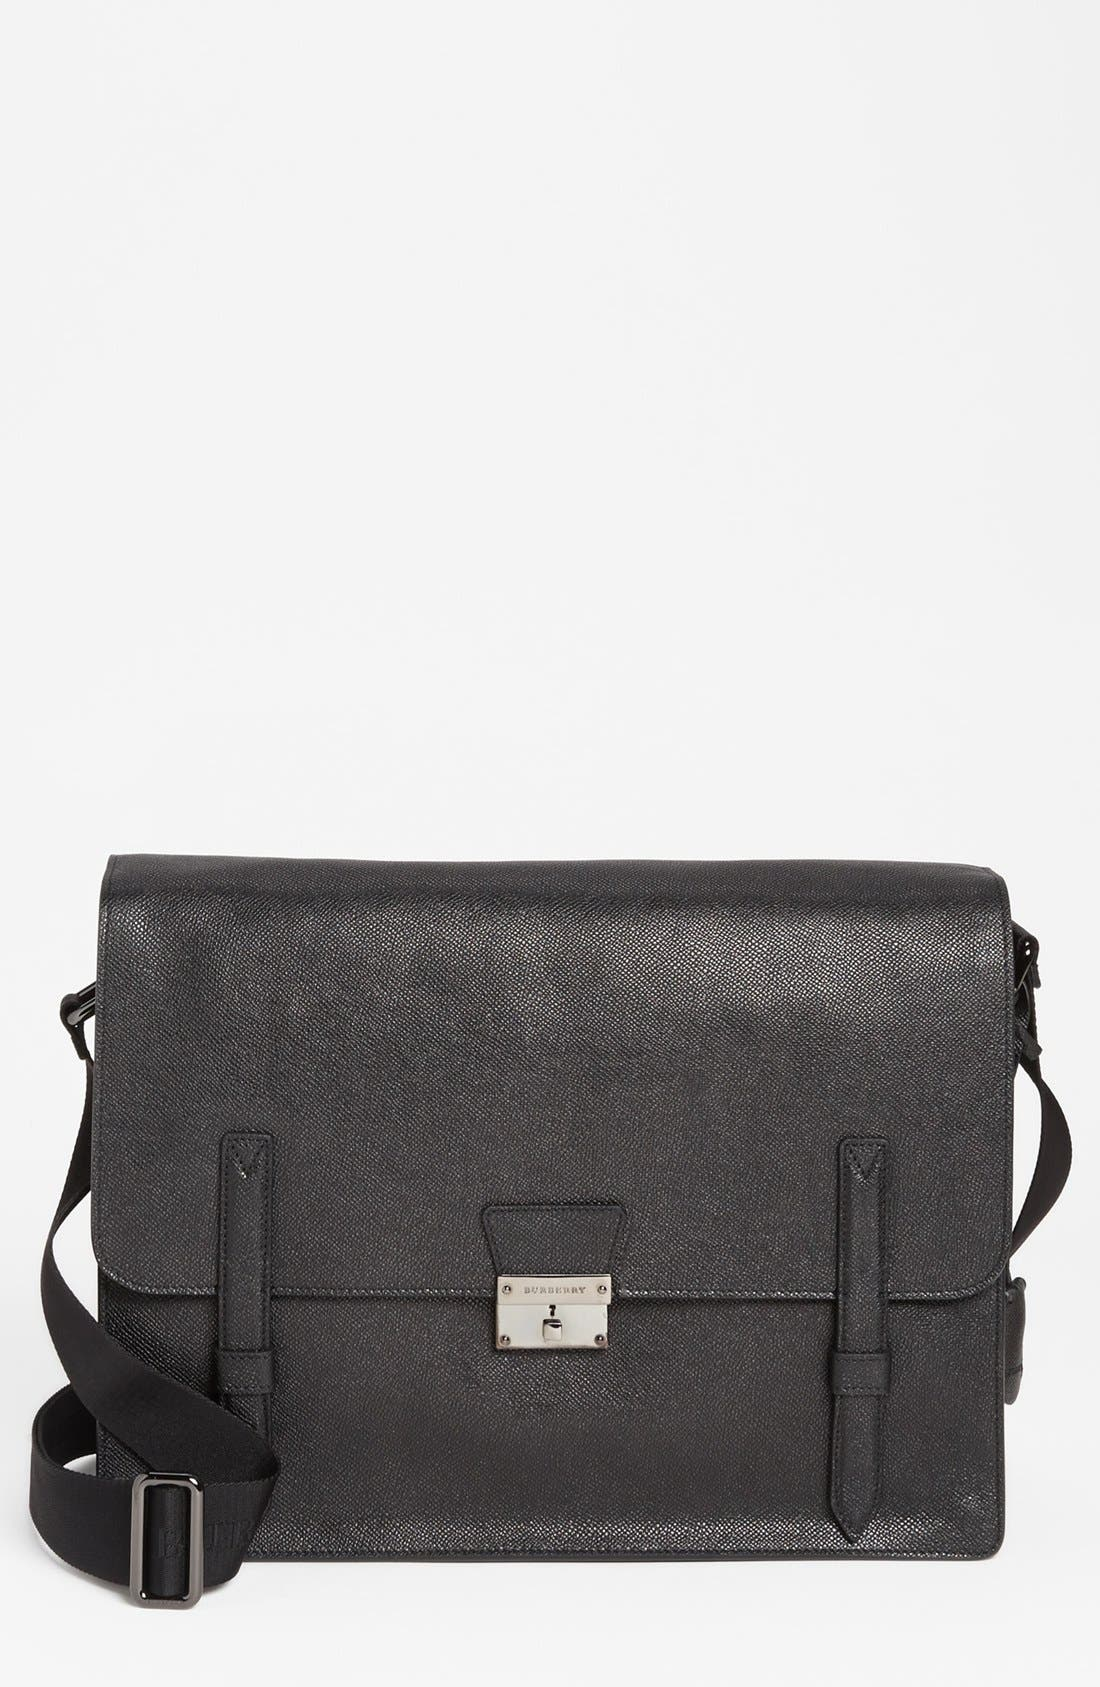 Alternate Image 1 Selected - Burberry 'Rivendale' Leather Messenger Bag